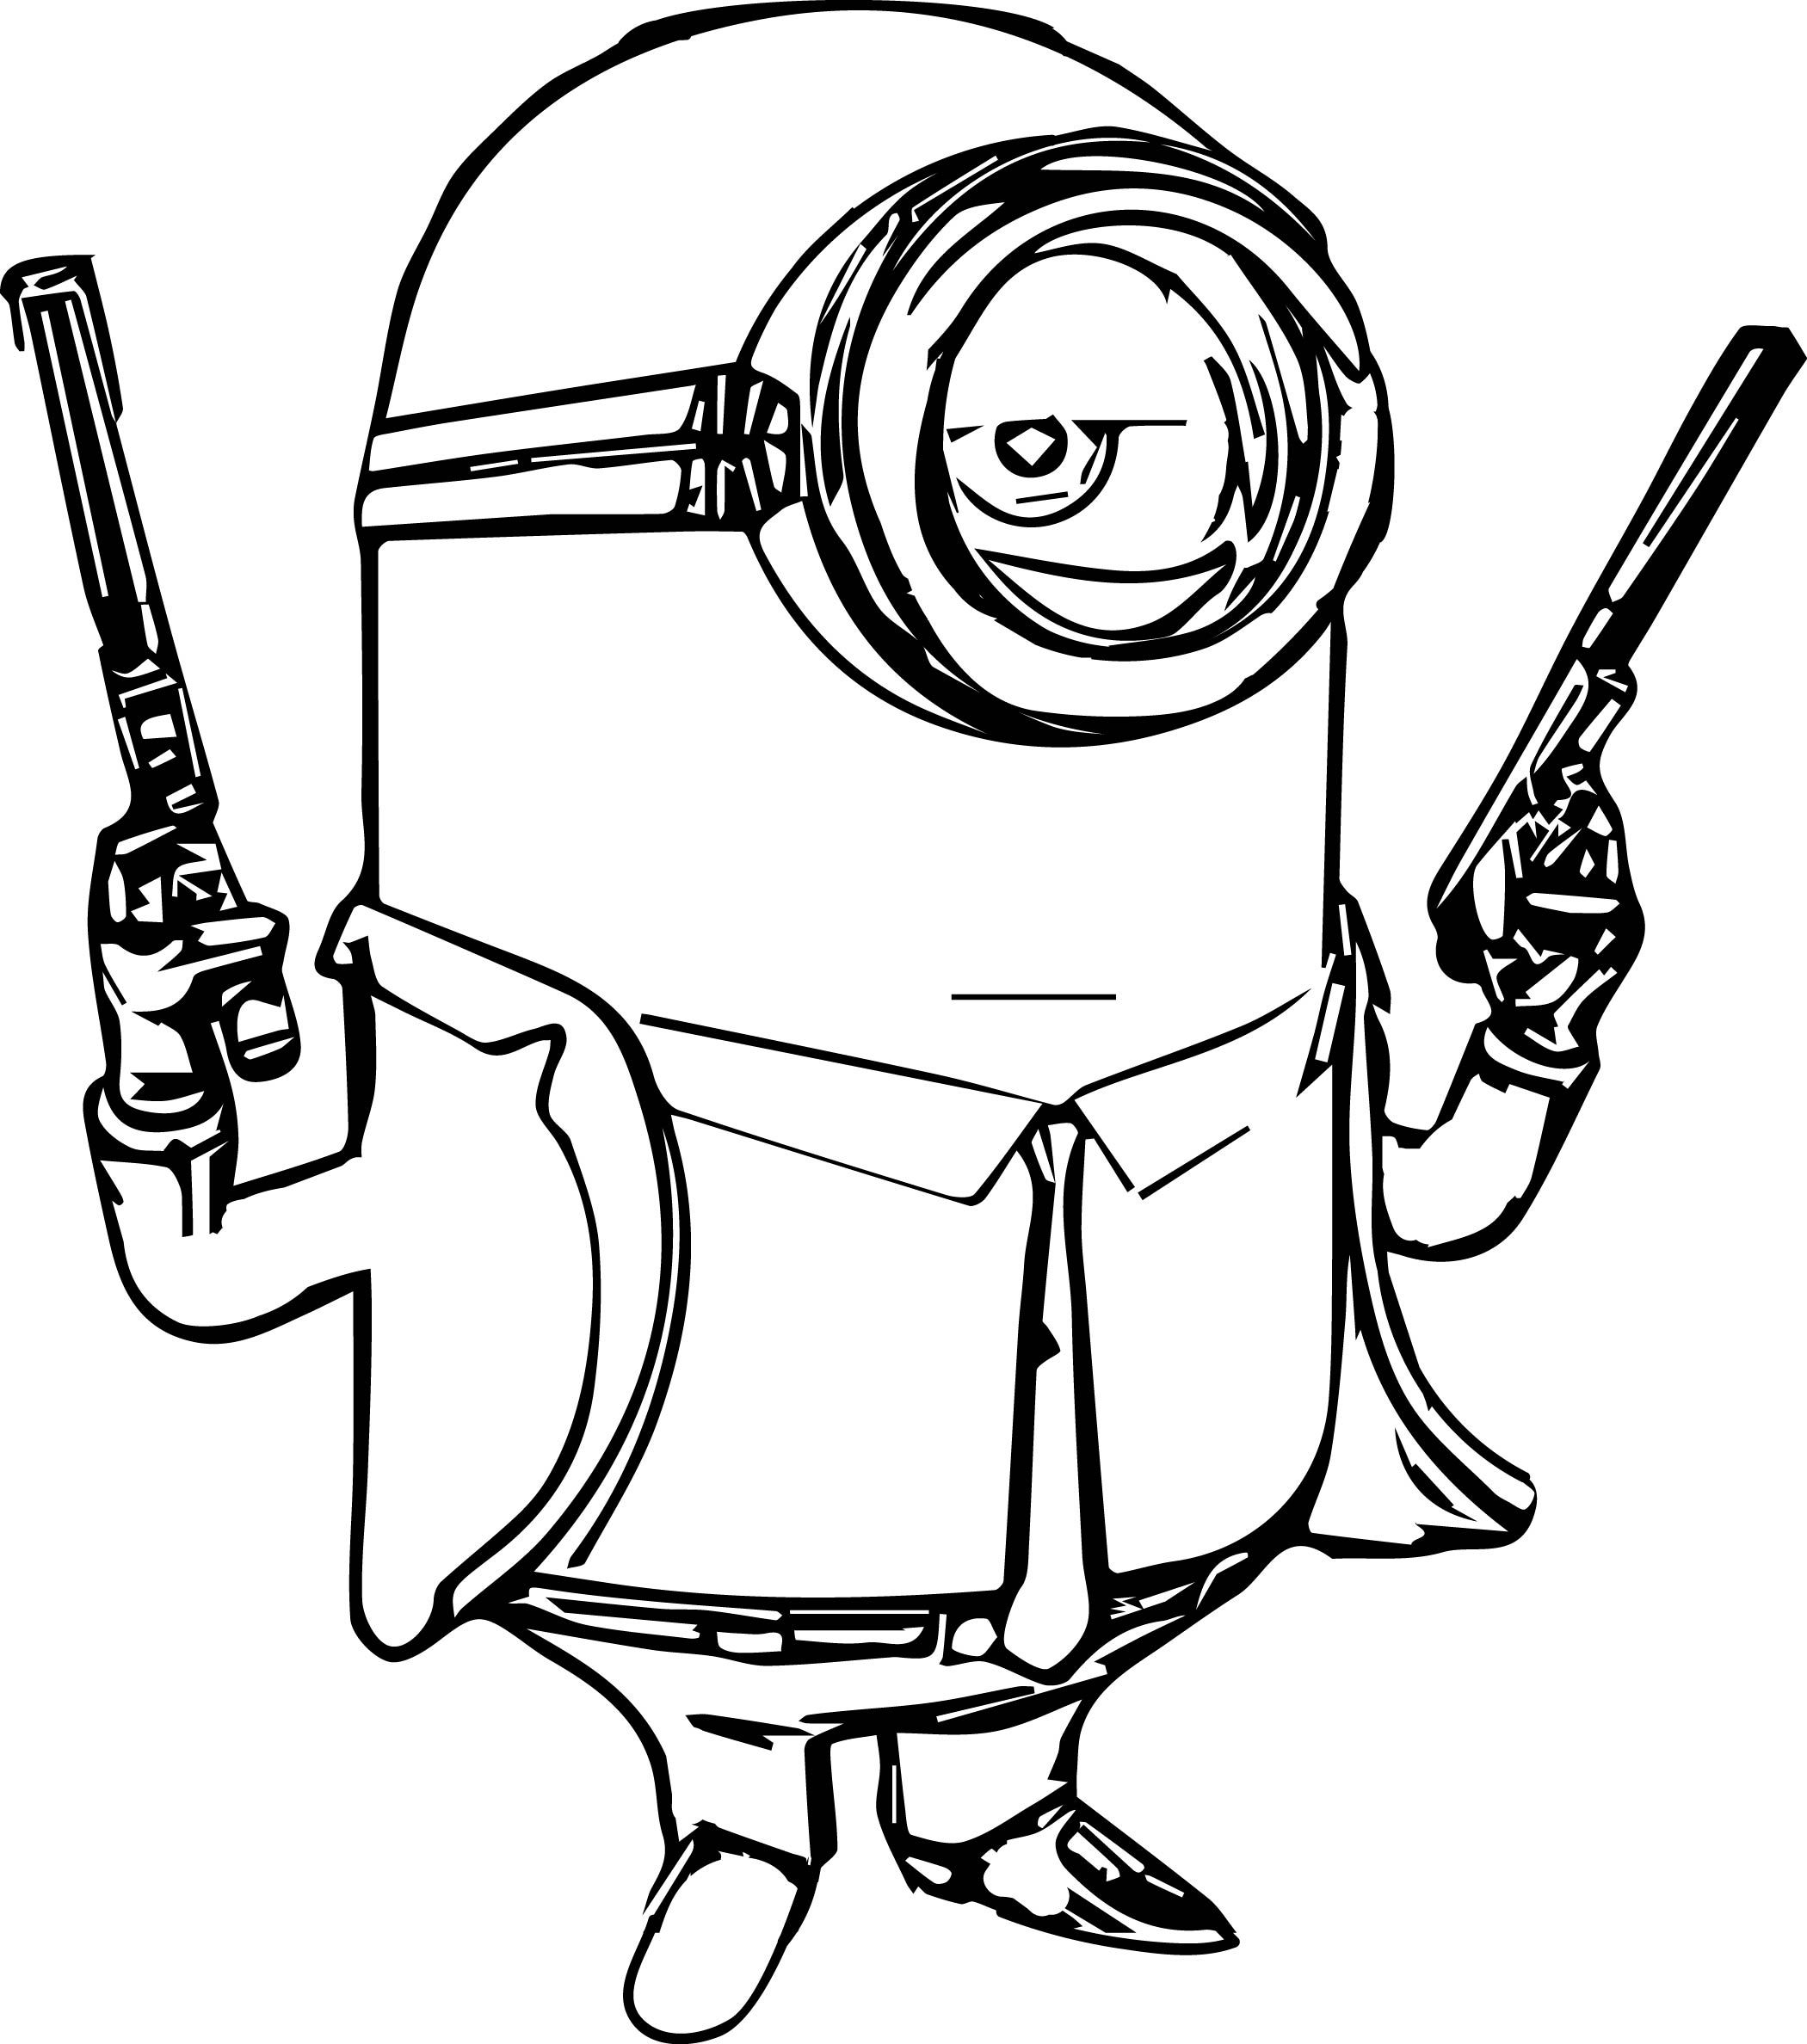 coloring pages minions angen - photo#27